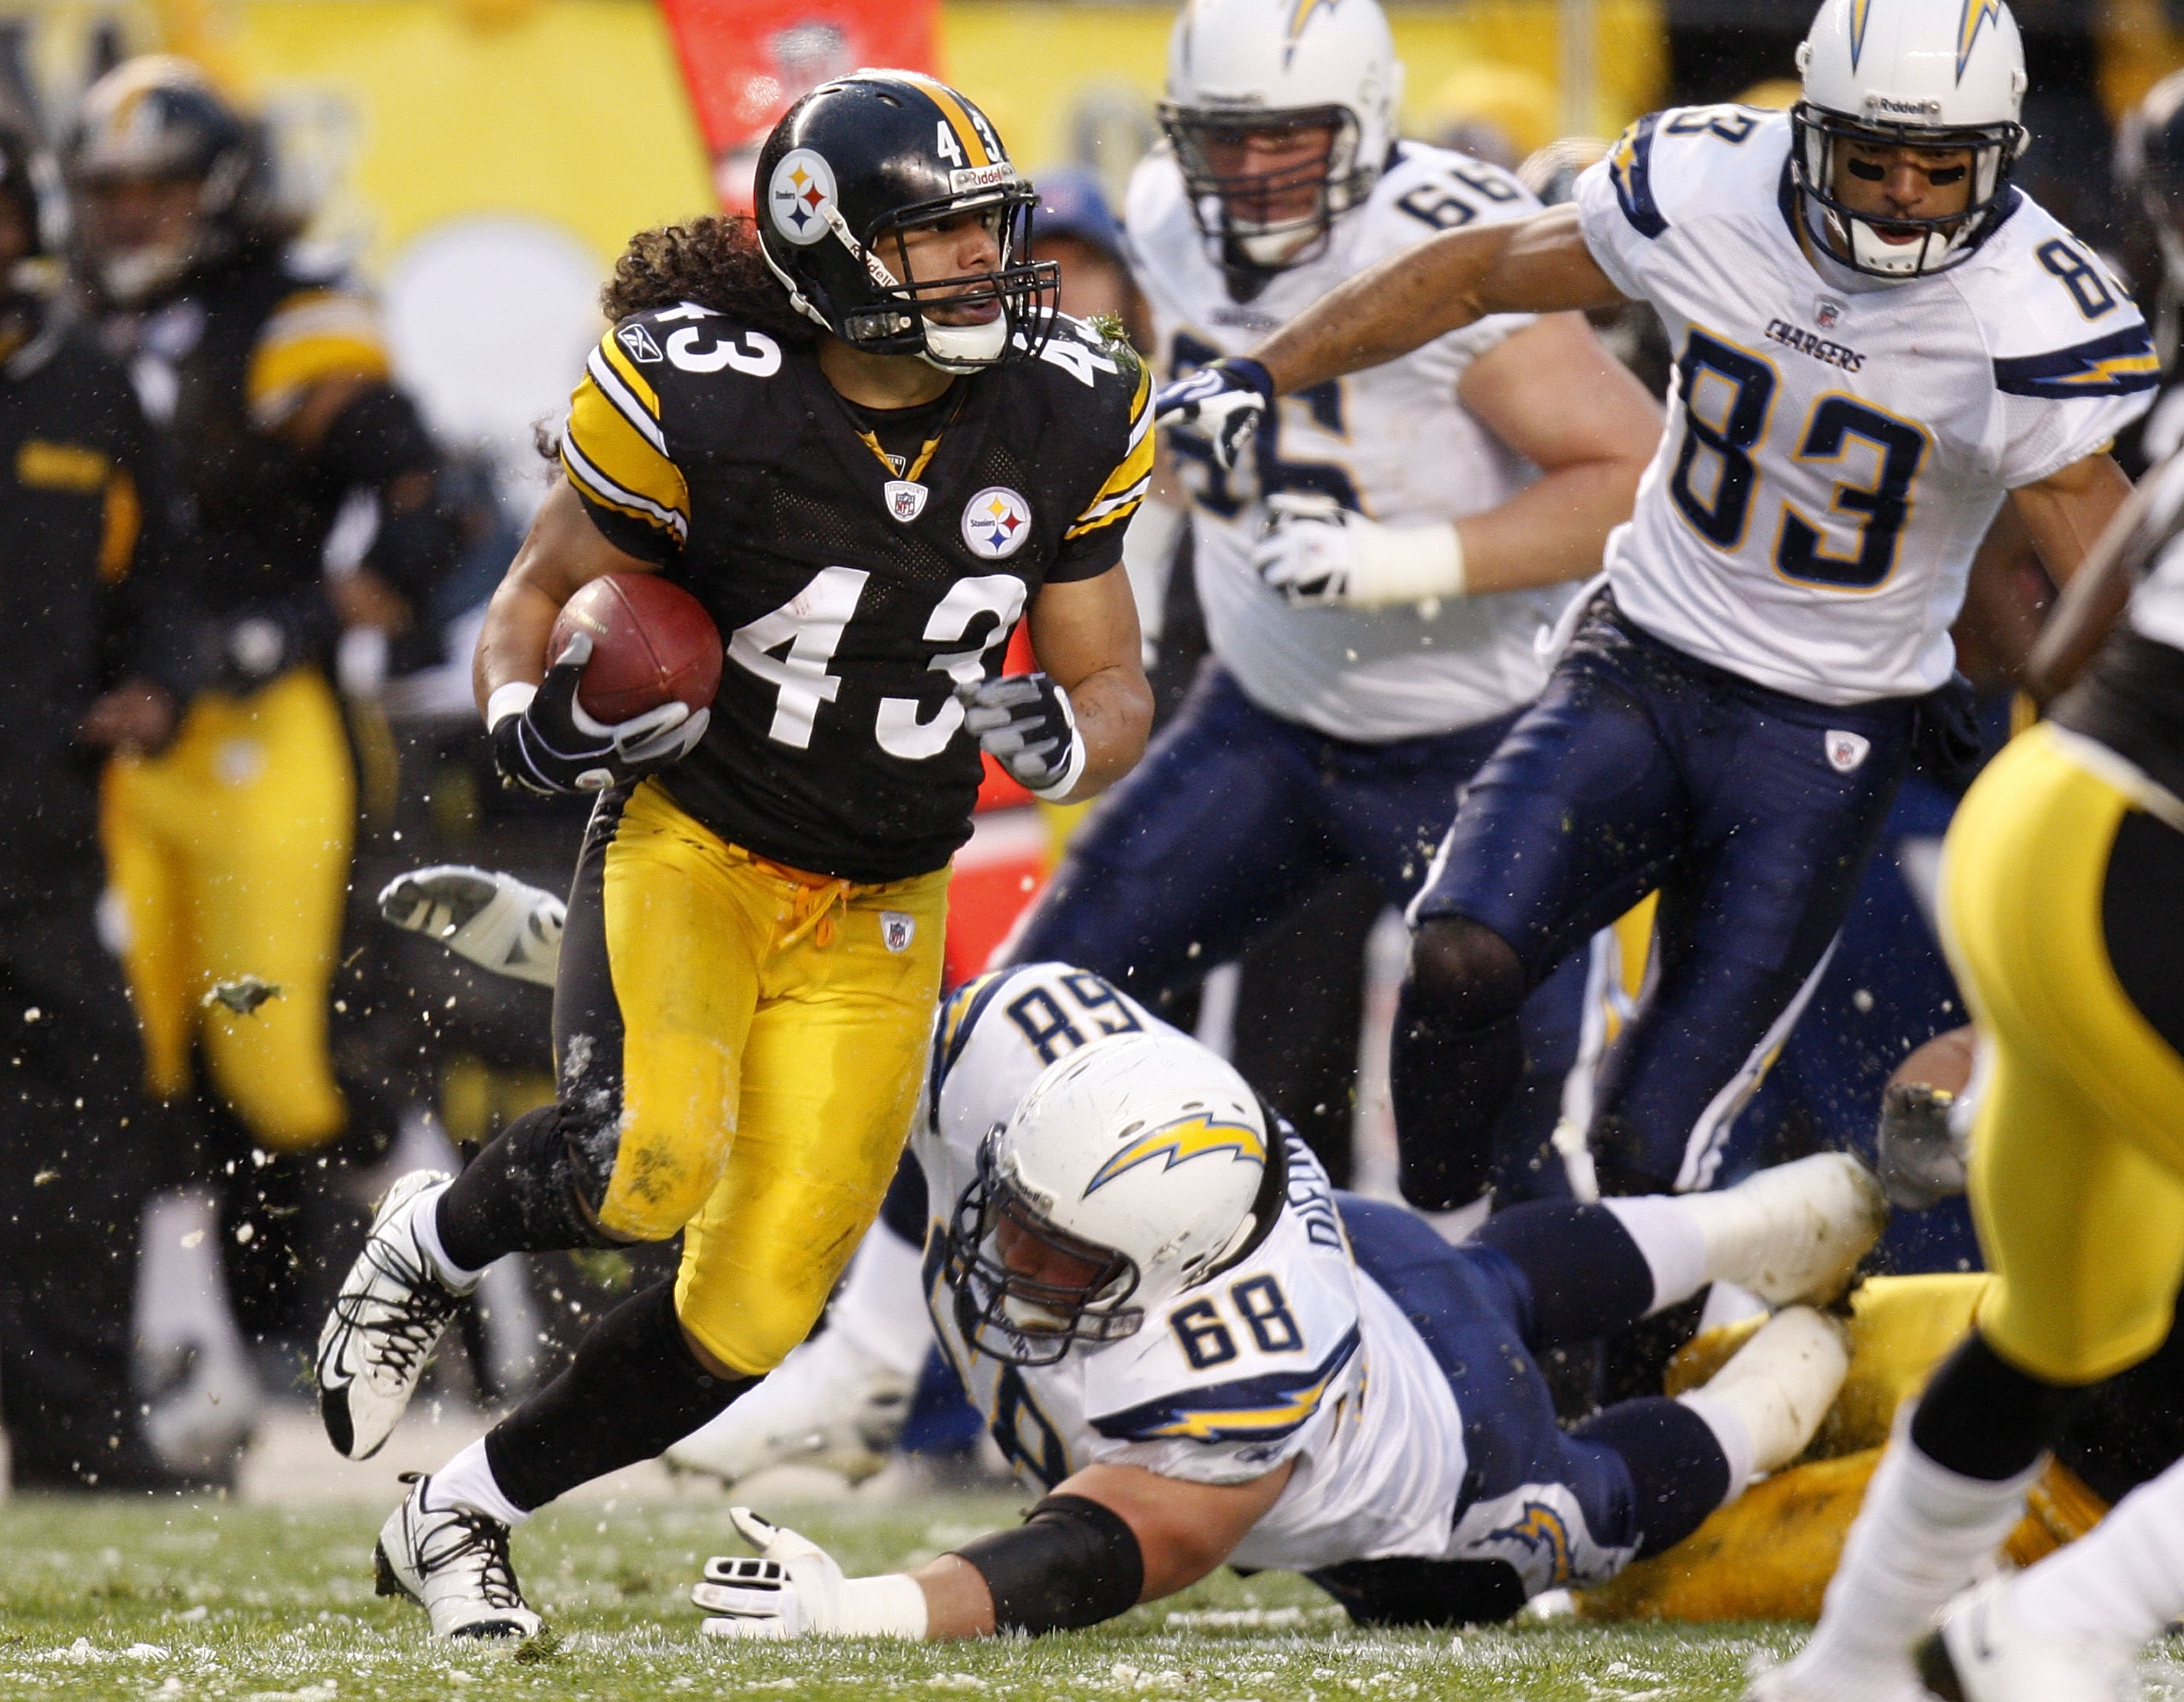 Troy Polamalu returning an interception up field against Philip Rivers and the Chargers